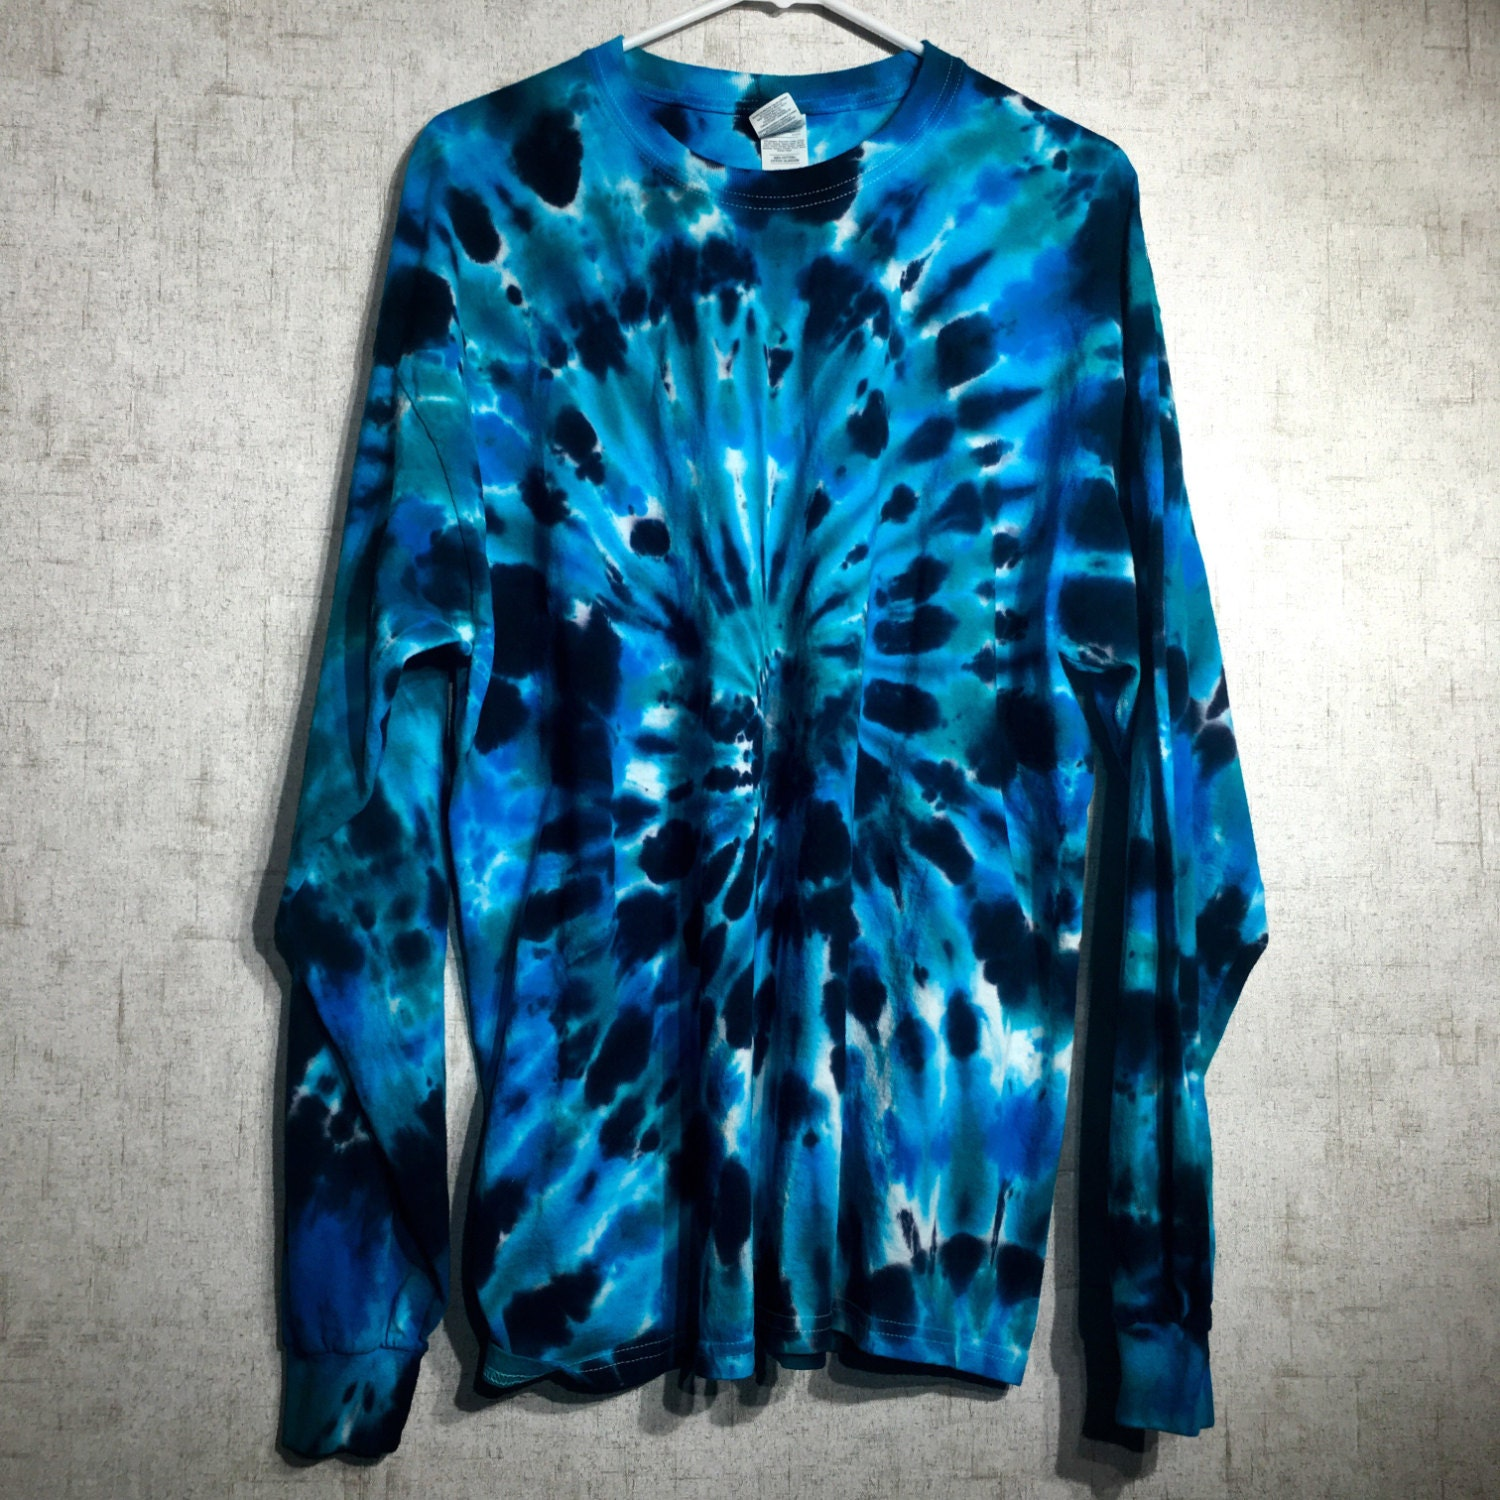 Custom made to order tie dye shirt black blue tie dye for Customized tie dye shirts